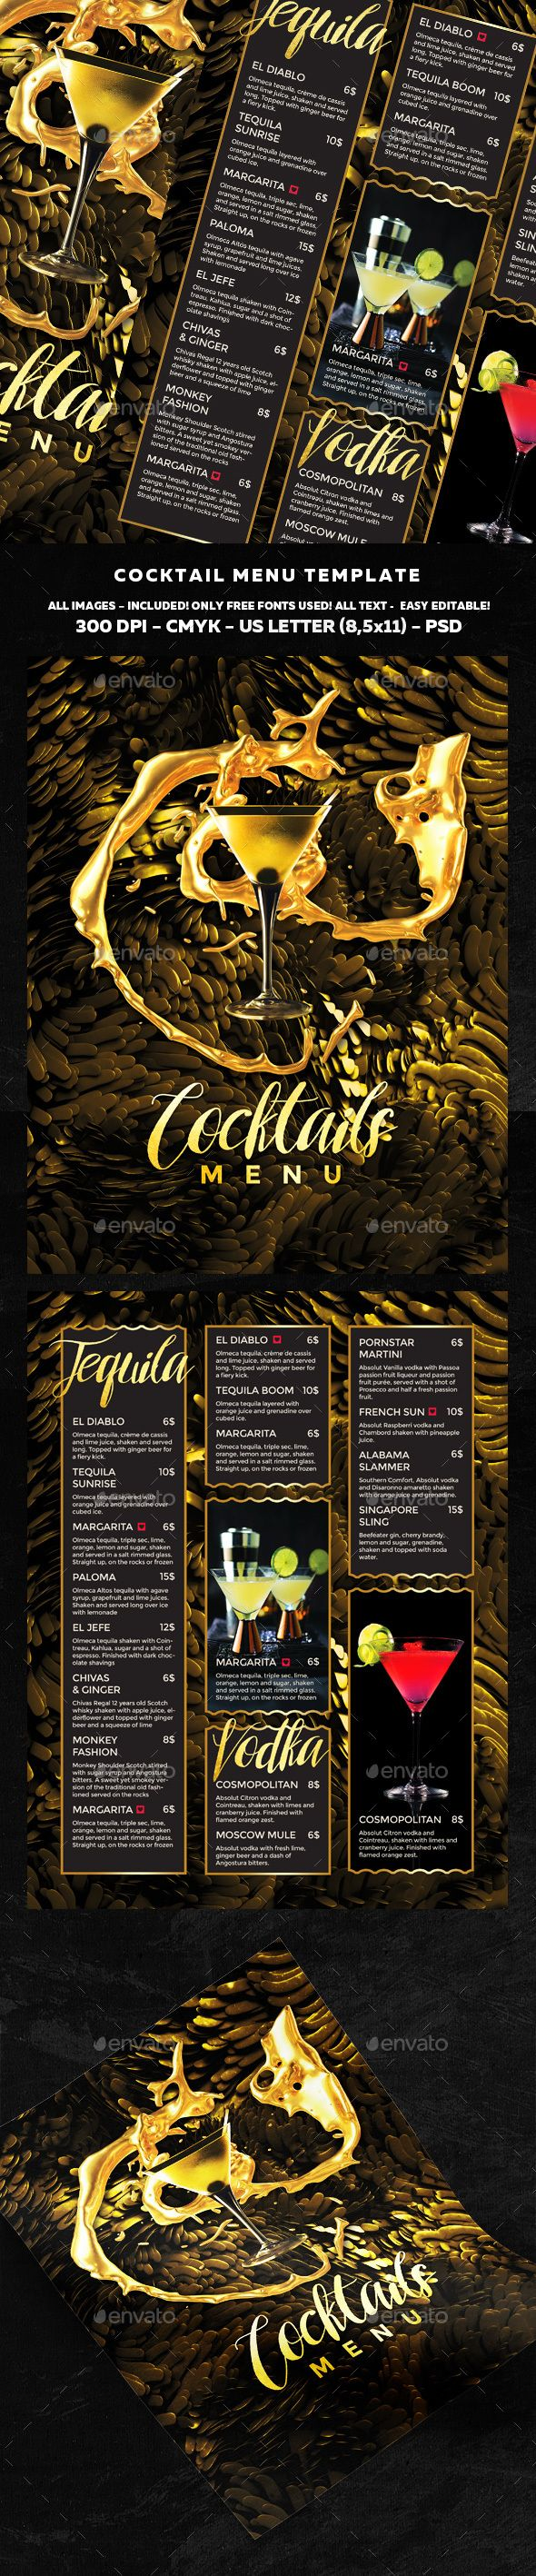 Cocktail Menu #alcohol #bar #club #cocktail #cocktaildrinks #cocktailmenu #cocktailmenuflyer #drinkmenu #drinks #drinksmenu #menu #mojito #nightout #nightclub #party #restaurantmenu